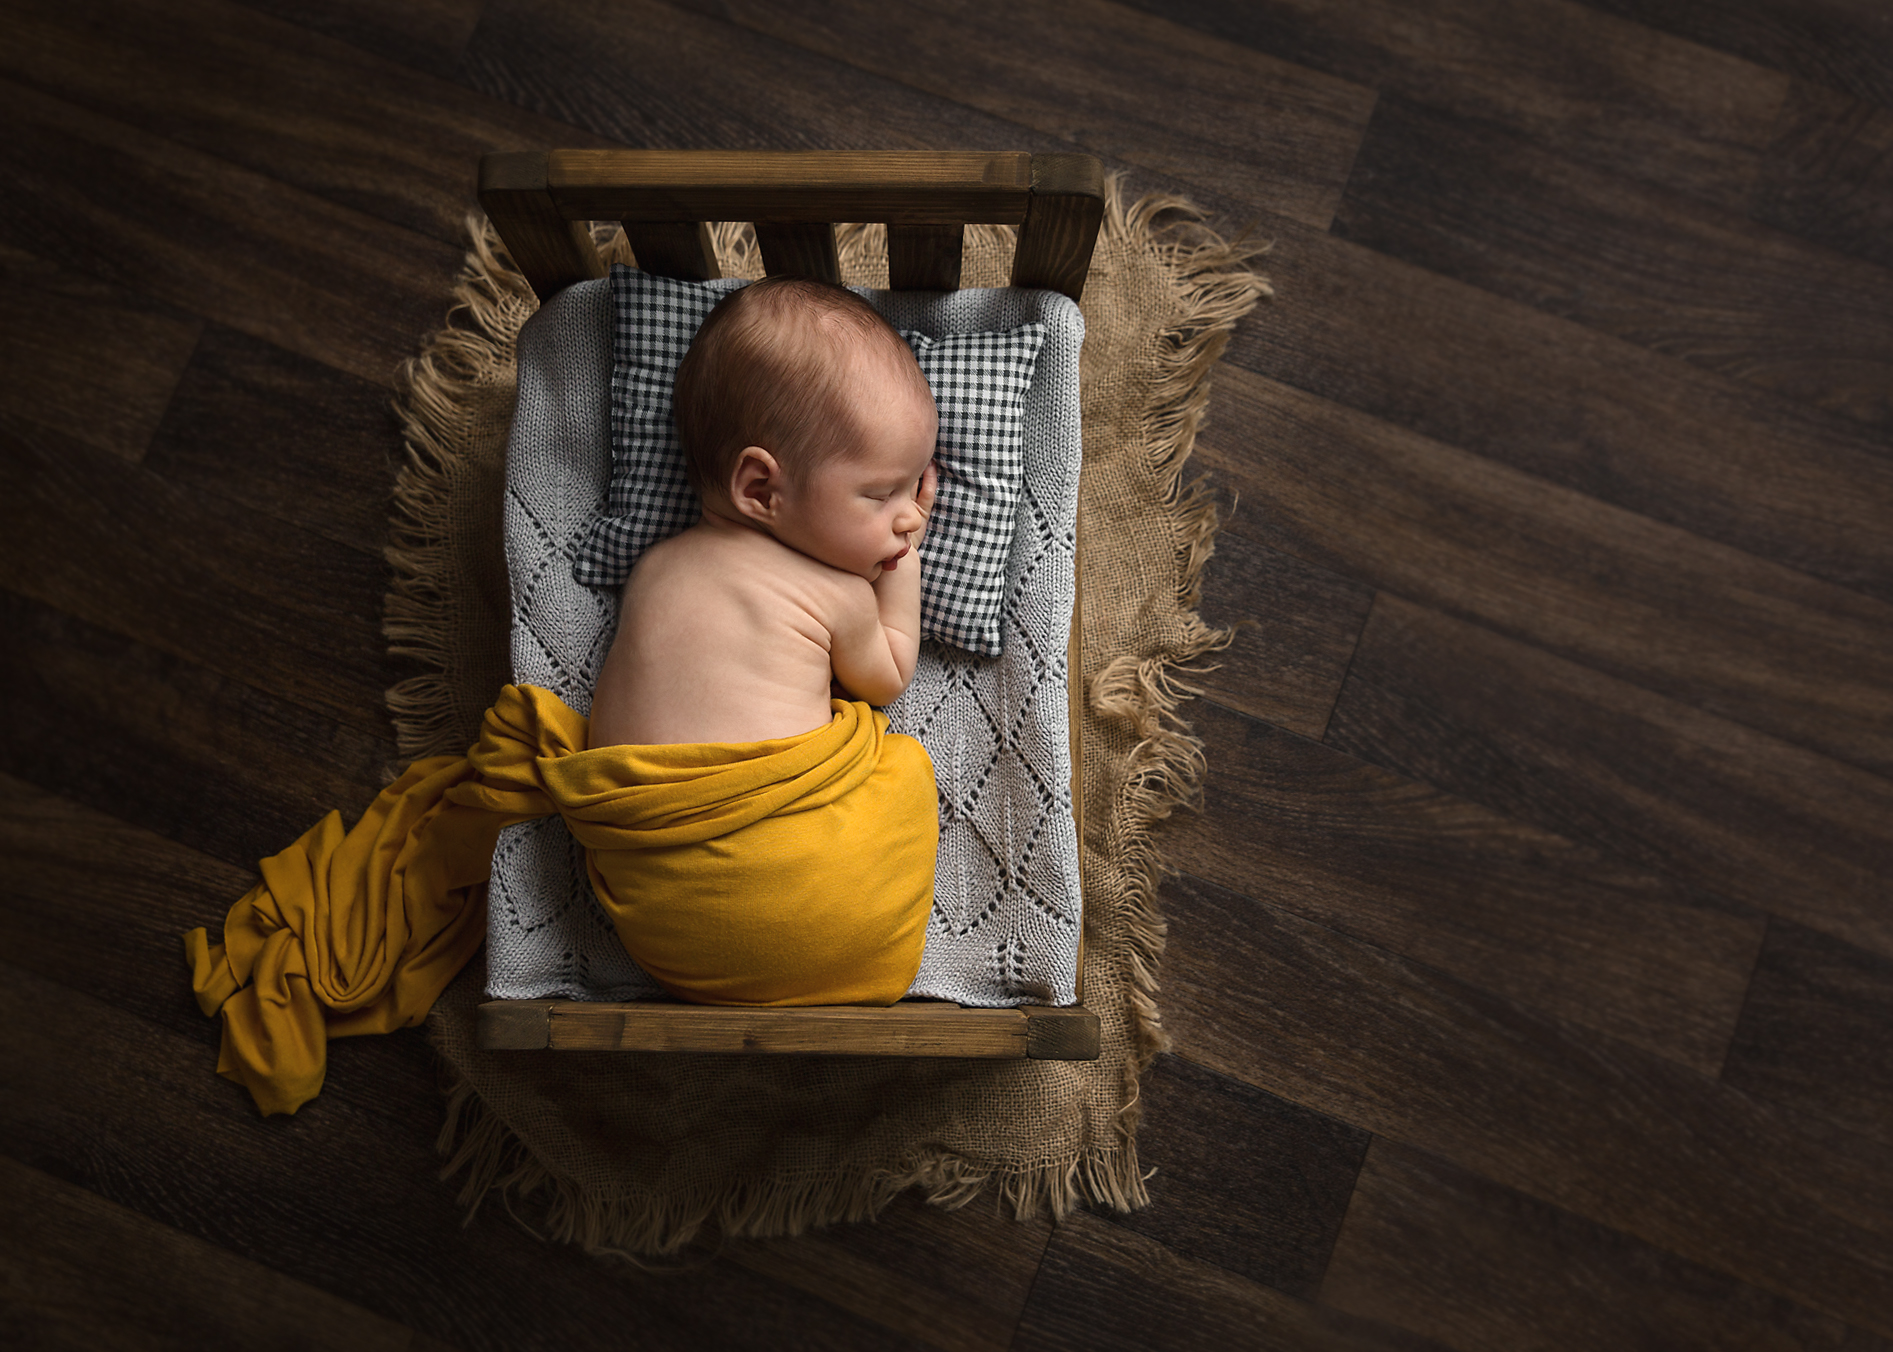 newborn photographer in caerphilly, near cardiff, south wales